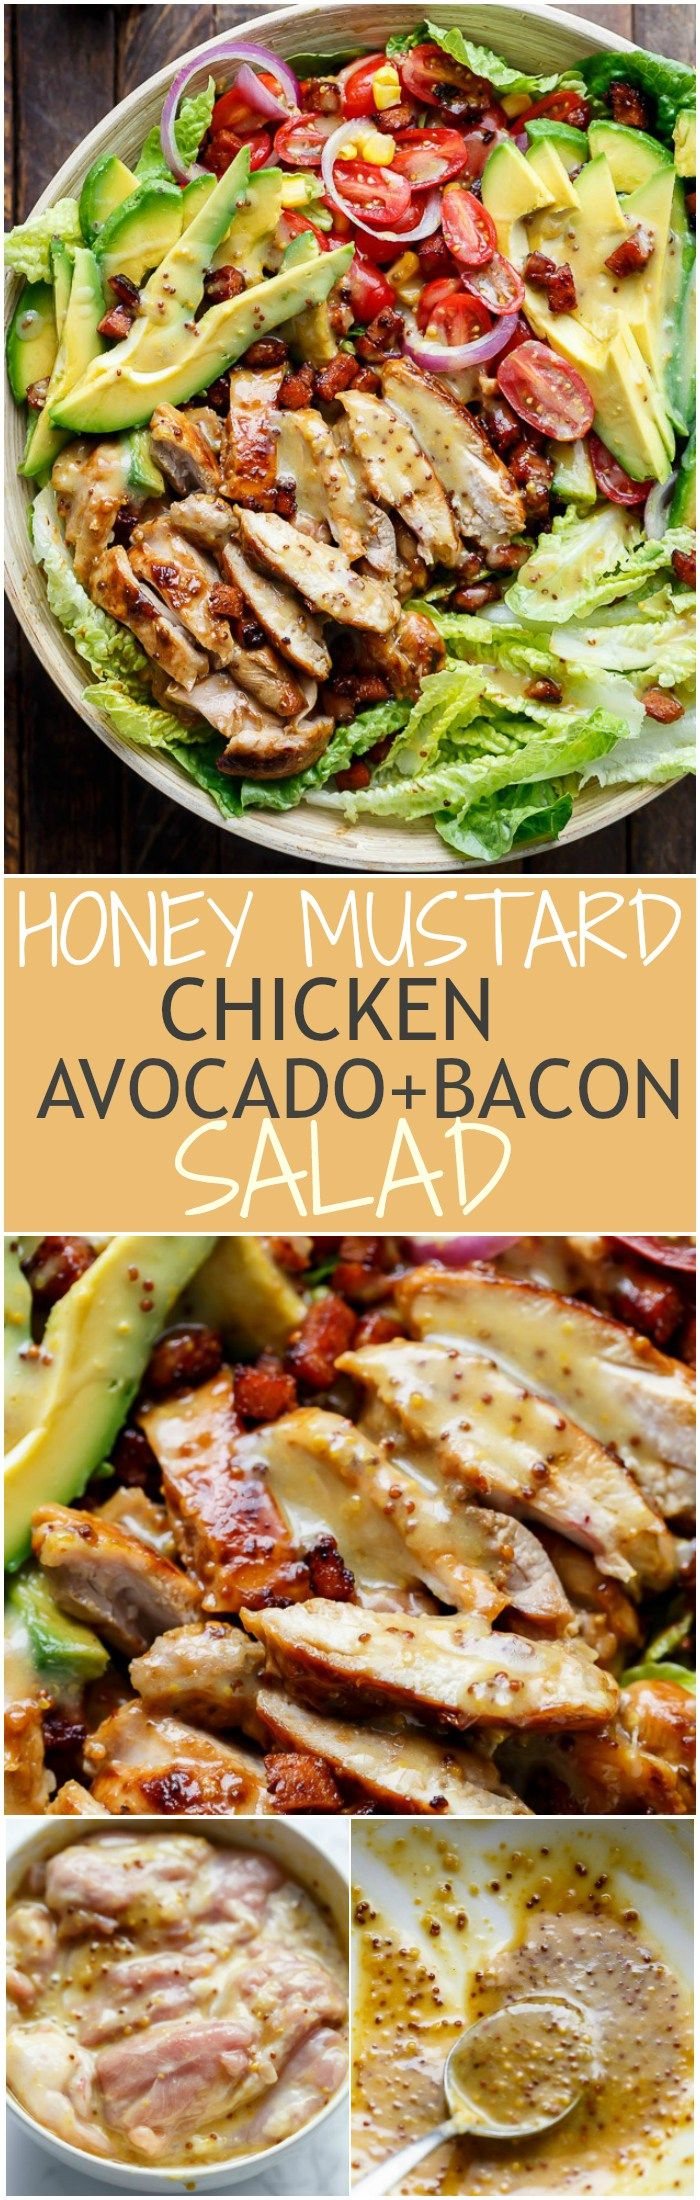 Honey Mustard Chicken, Avocado + Bacon Salad, with a crazy good Honey Mustard dressing withOUT mayonnaise or yogurt!